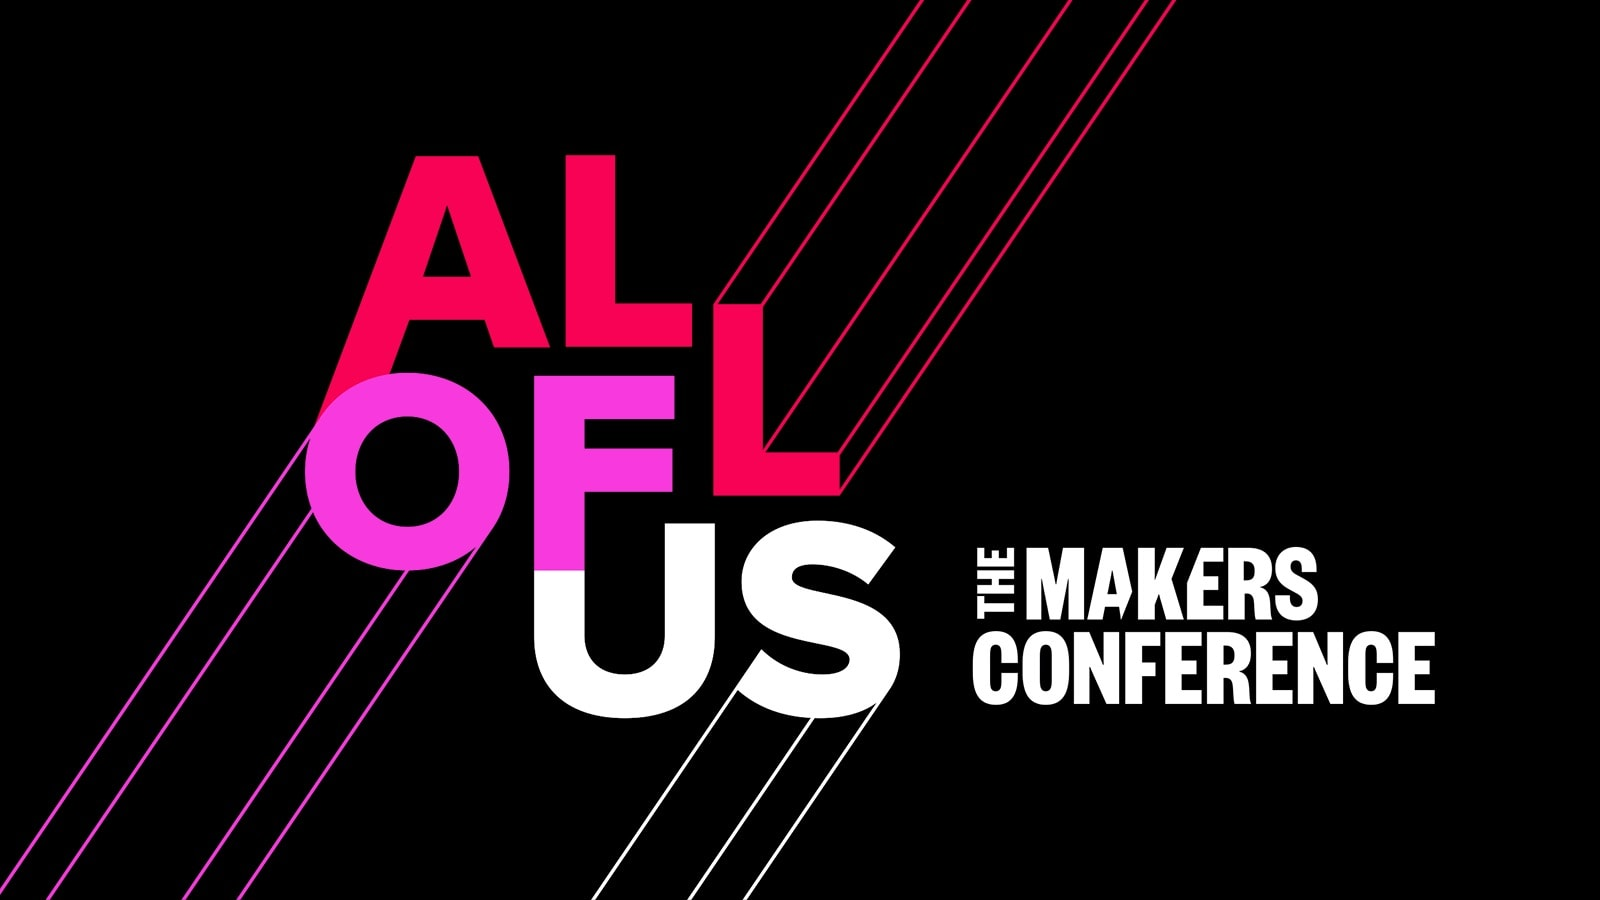 The 2019 MAKERS Conference